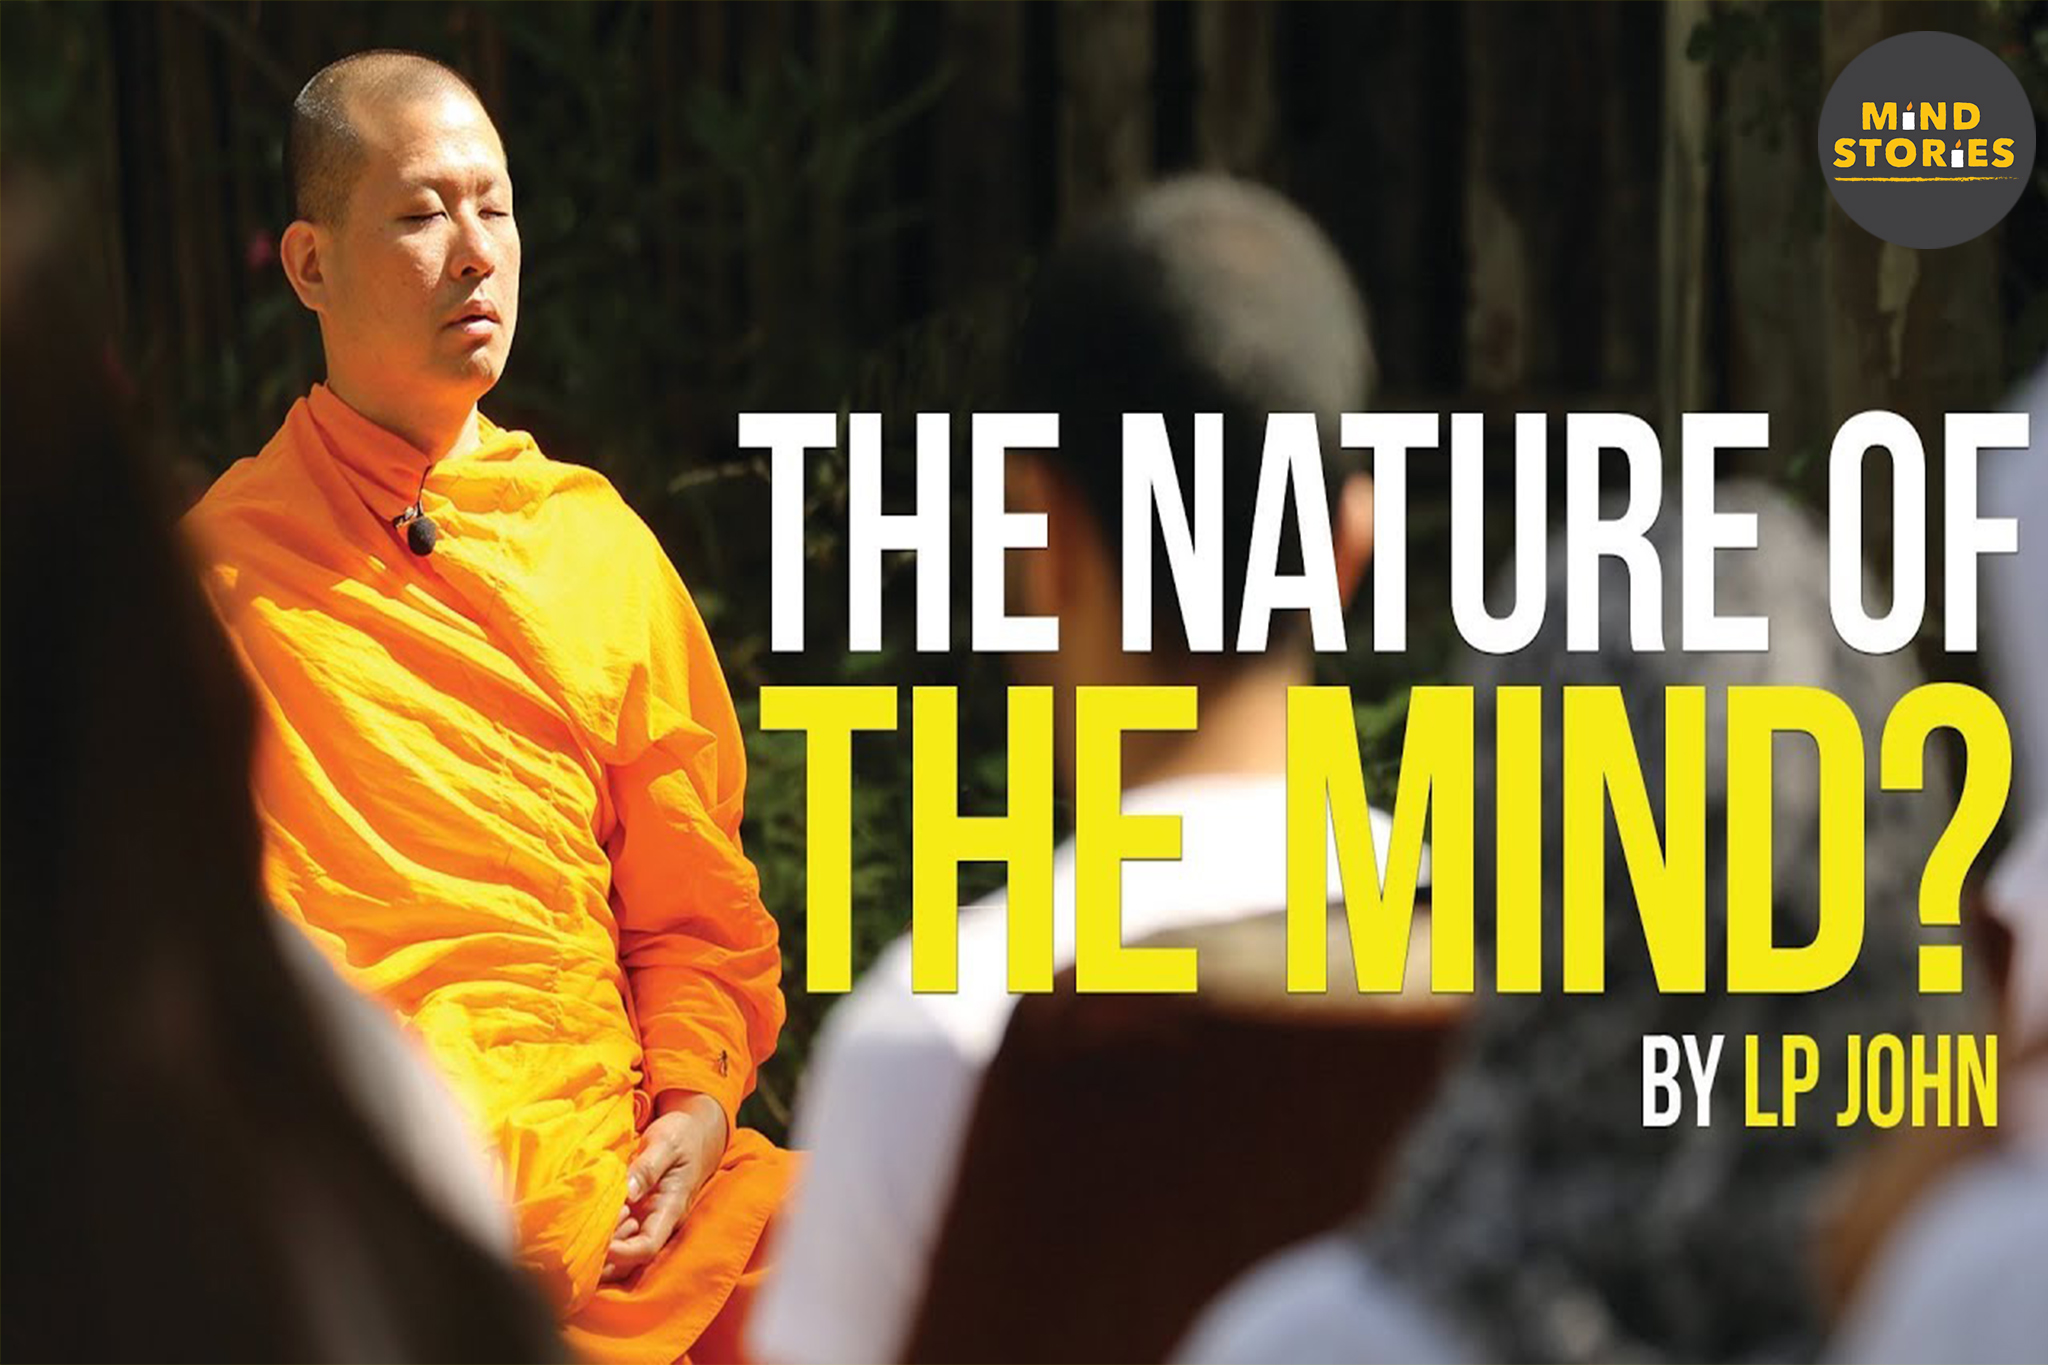 The nature of the mind?